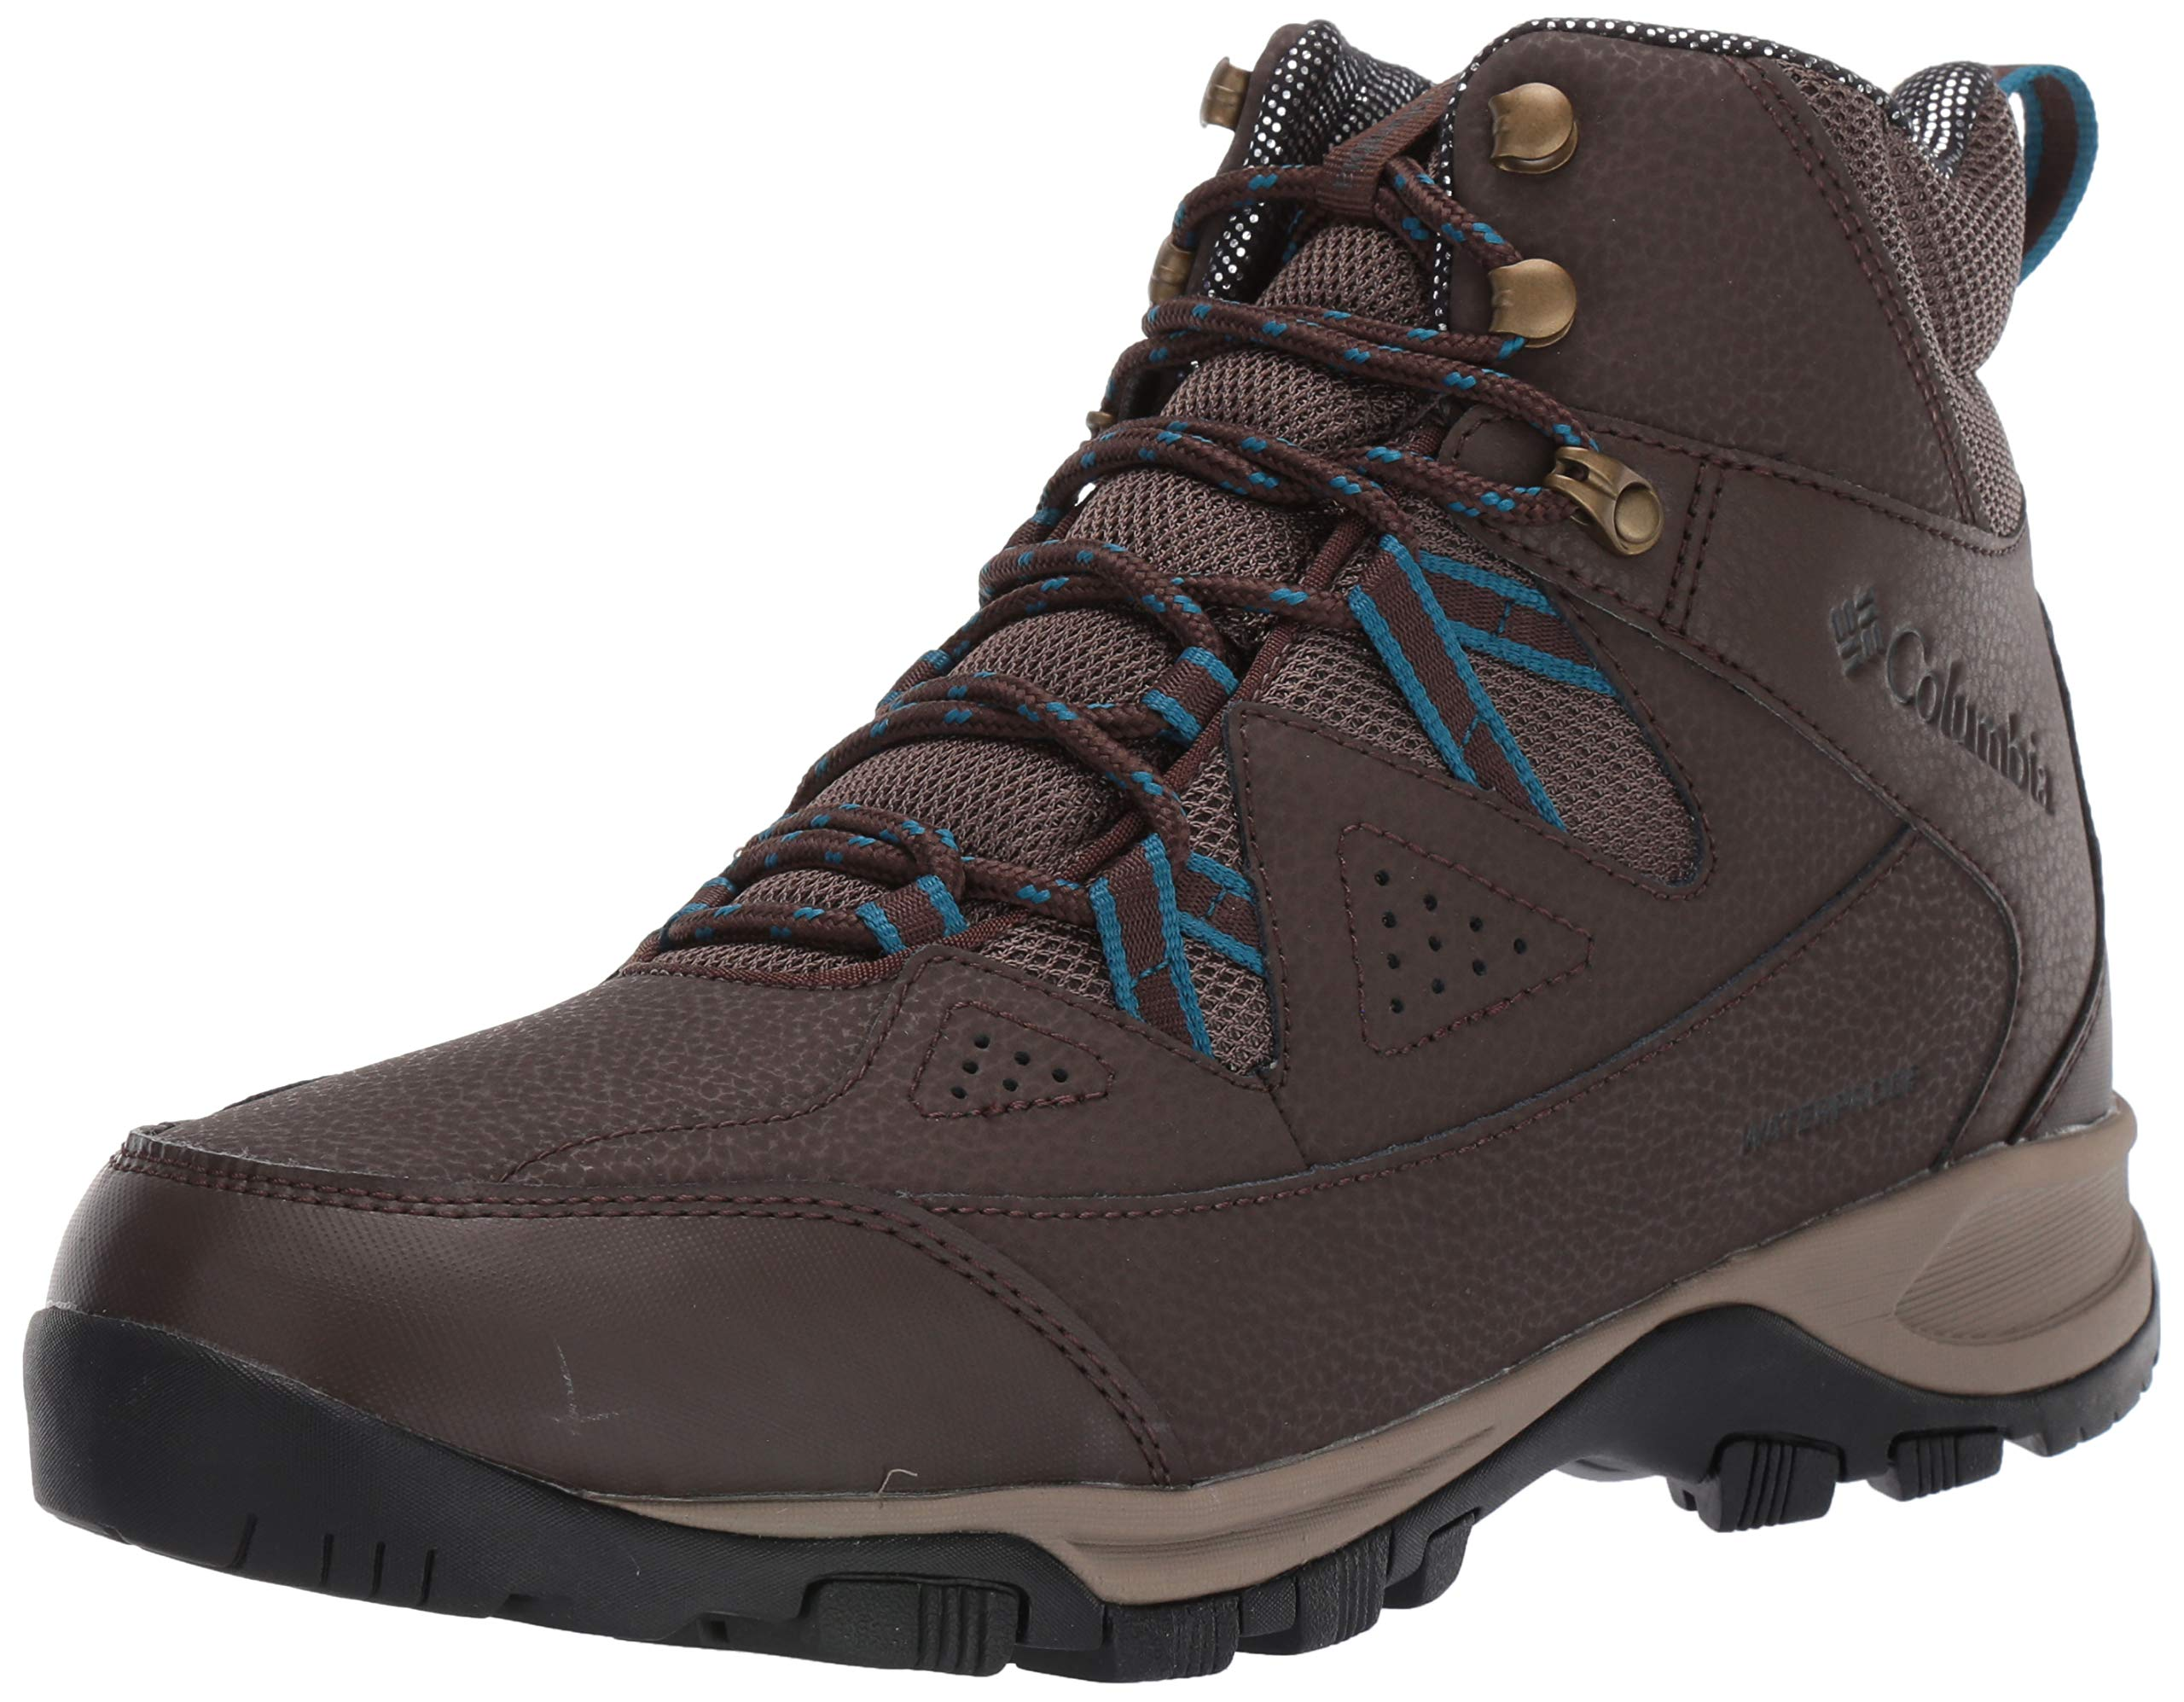 Columbia Men's LIFTOP III Snow Boot, Cordovan, Lagoon, 17 Regular US by Columbia